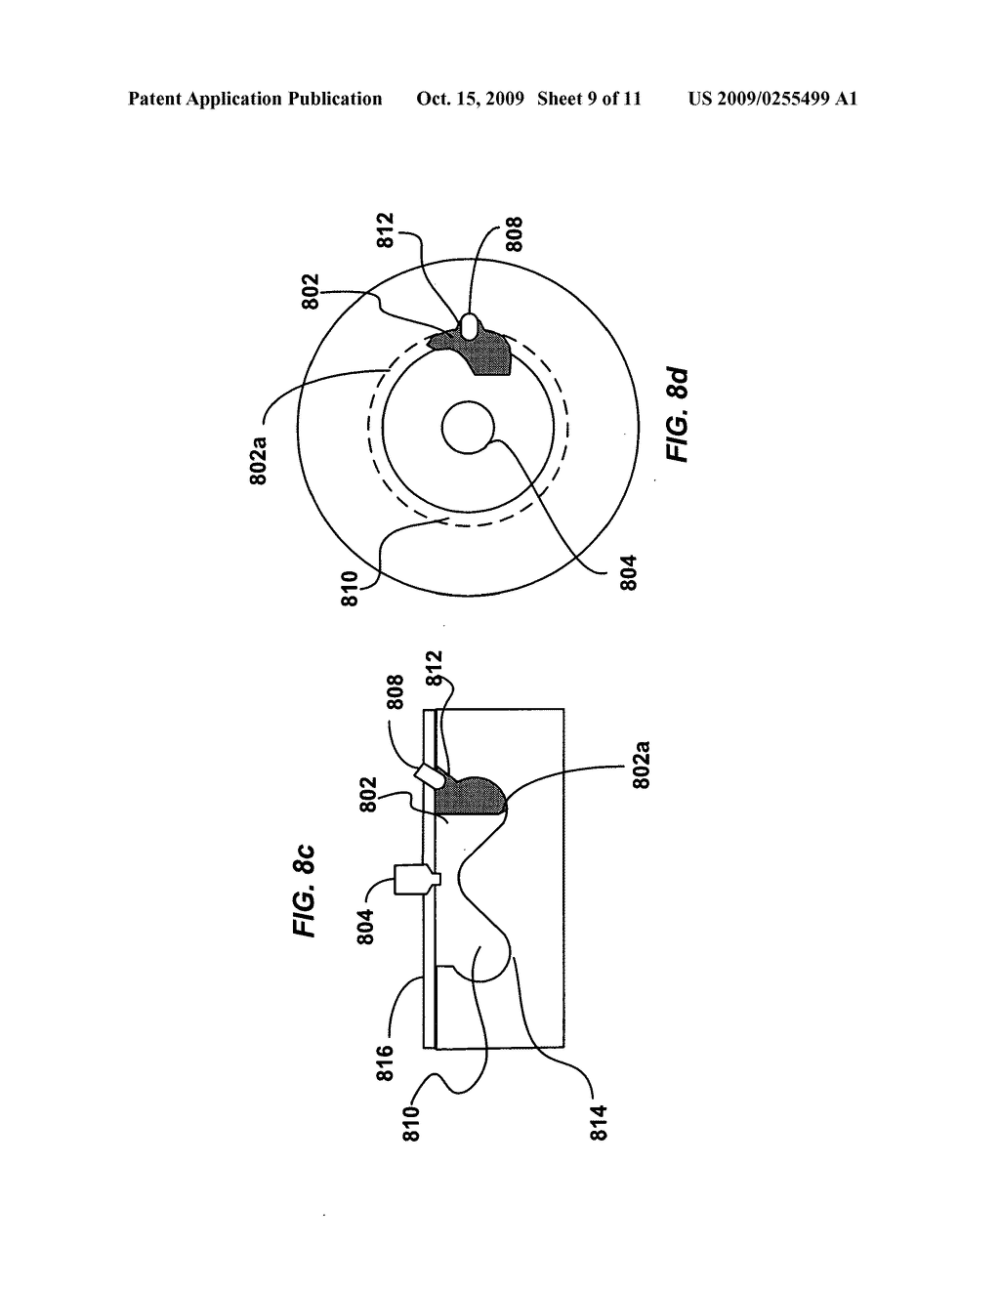 medium resolution of surface ignition mechanism for diesel engines diagram schematic and image 10